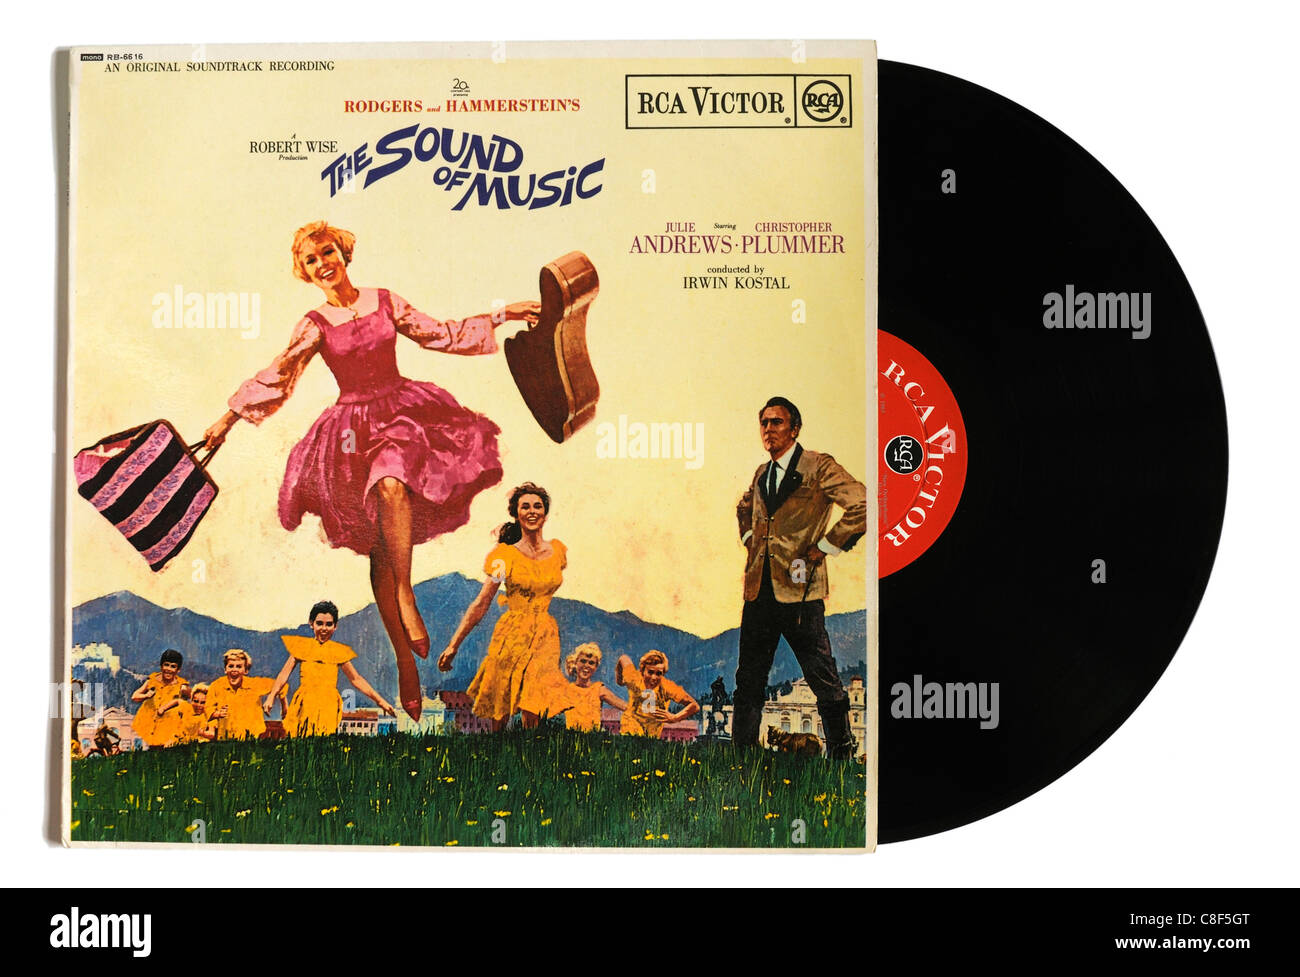 The Sound of Music film soundtrack - Stock Image